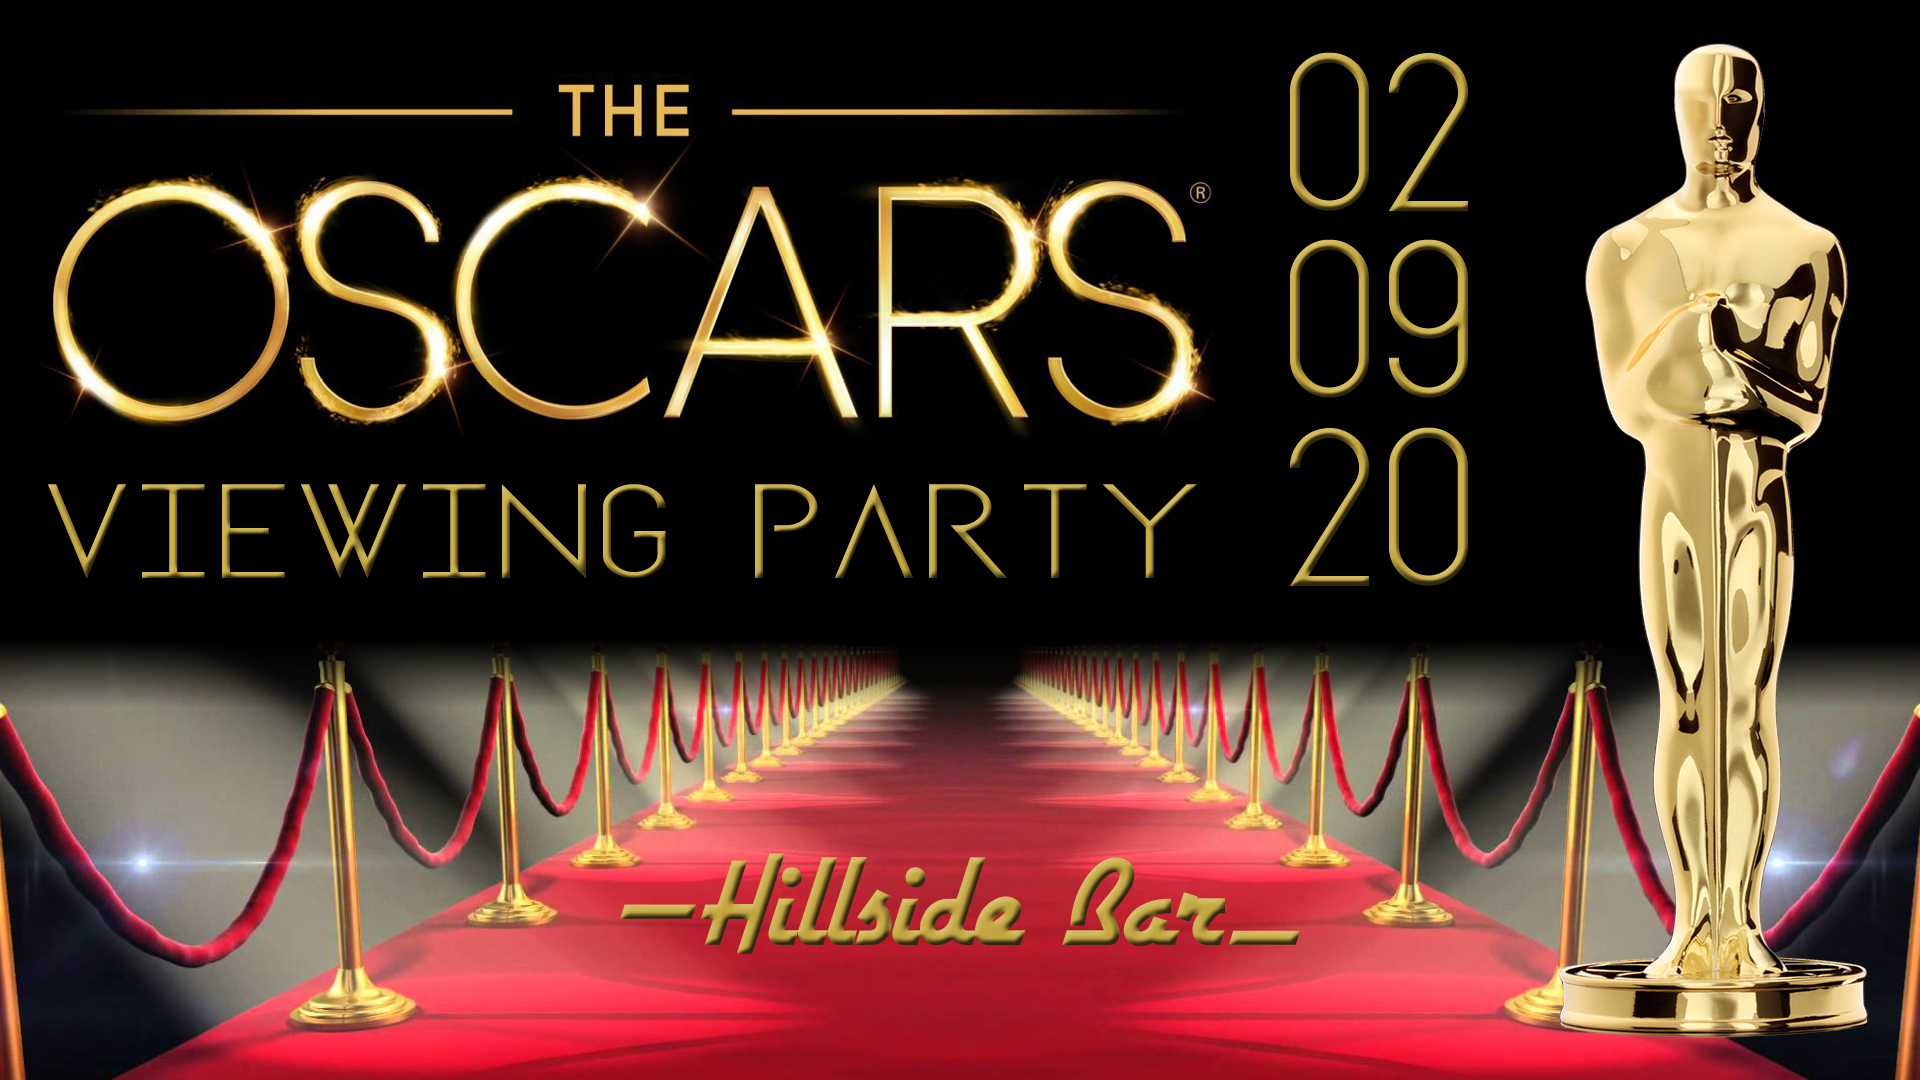 Hillside Oscar Party 2020